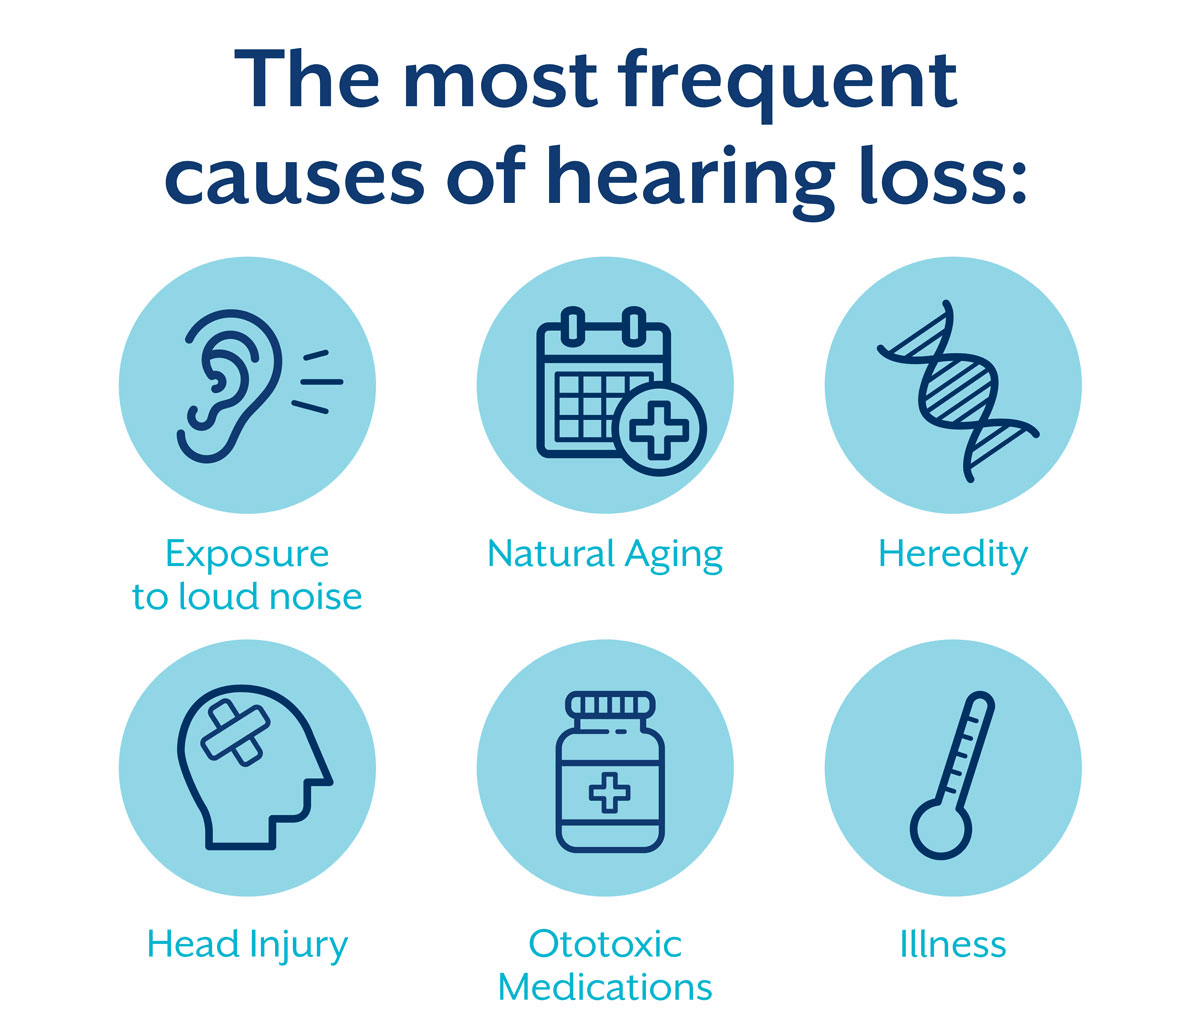 the most frequent causes of hearing loss